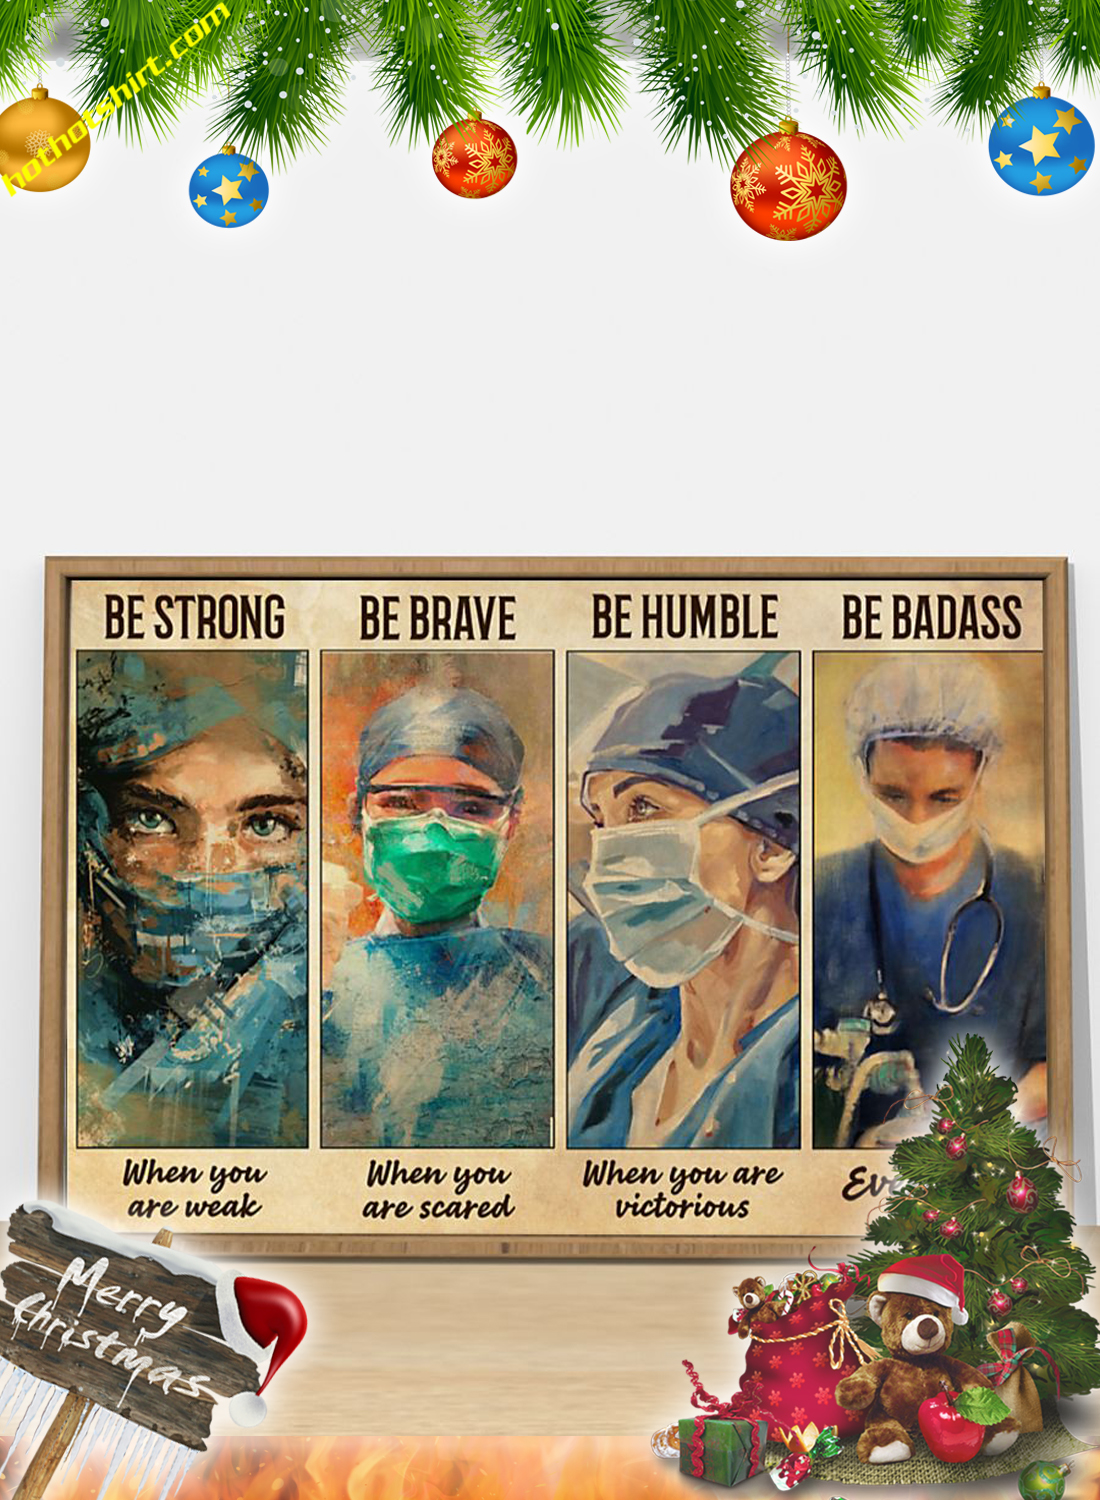 Female Physicians Be strong be brave be humble be badass poster 2